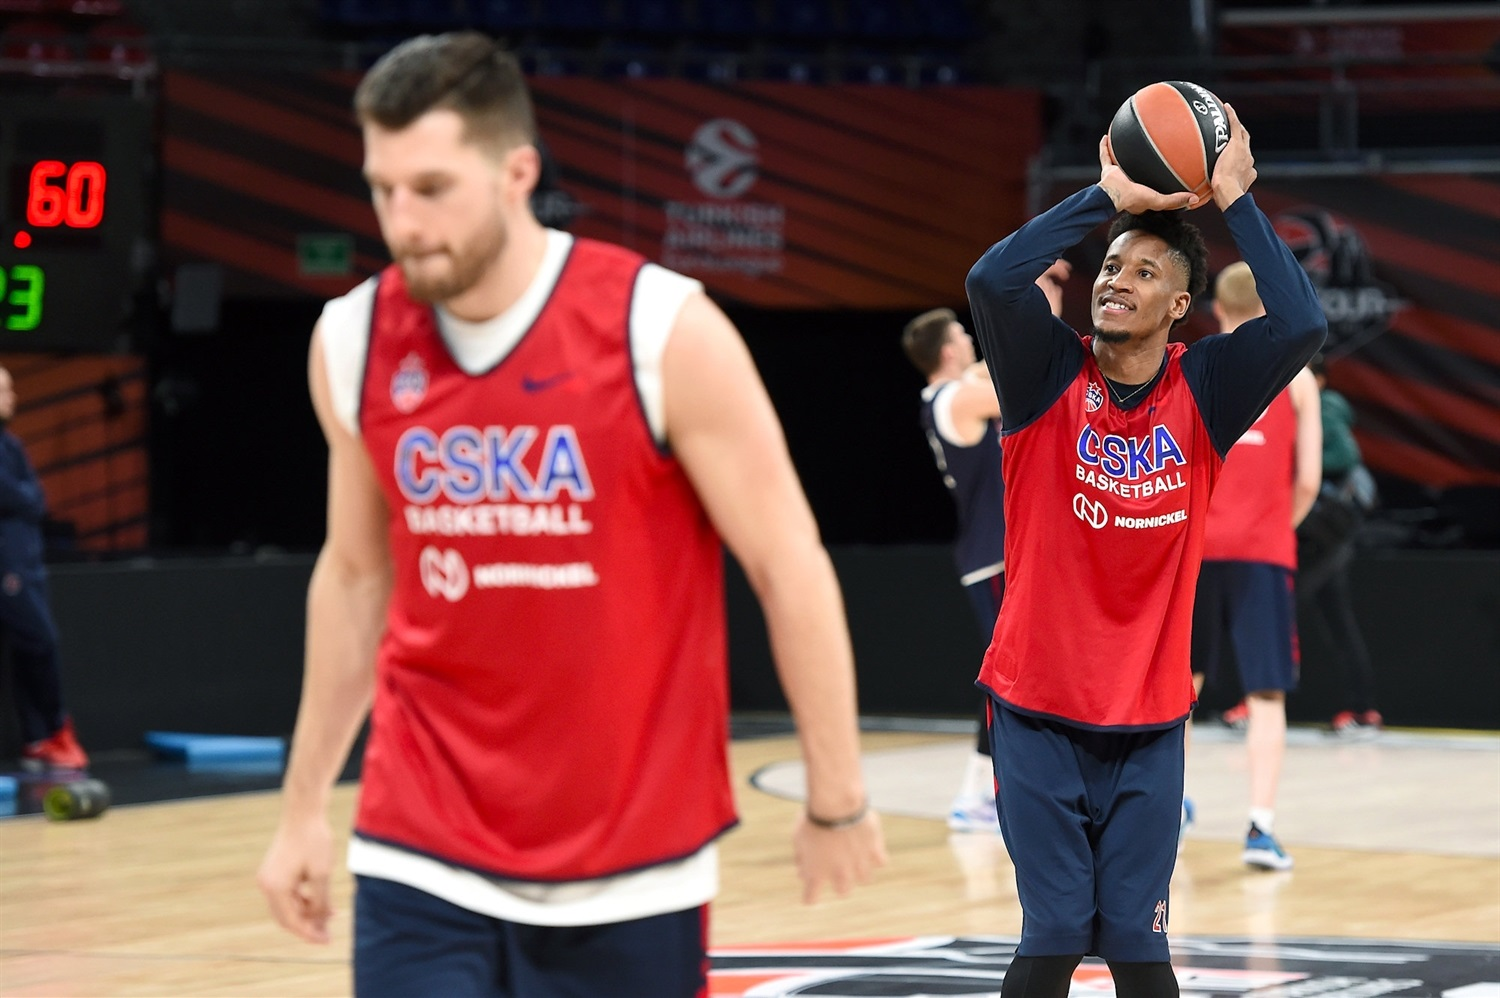 Will Clyburn - CSKA Moscow practices - Final Four Vitoria-Gasteiz 2019 - EB18